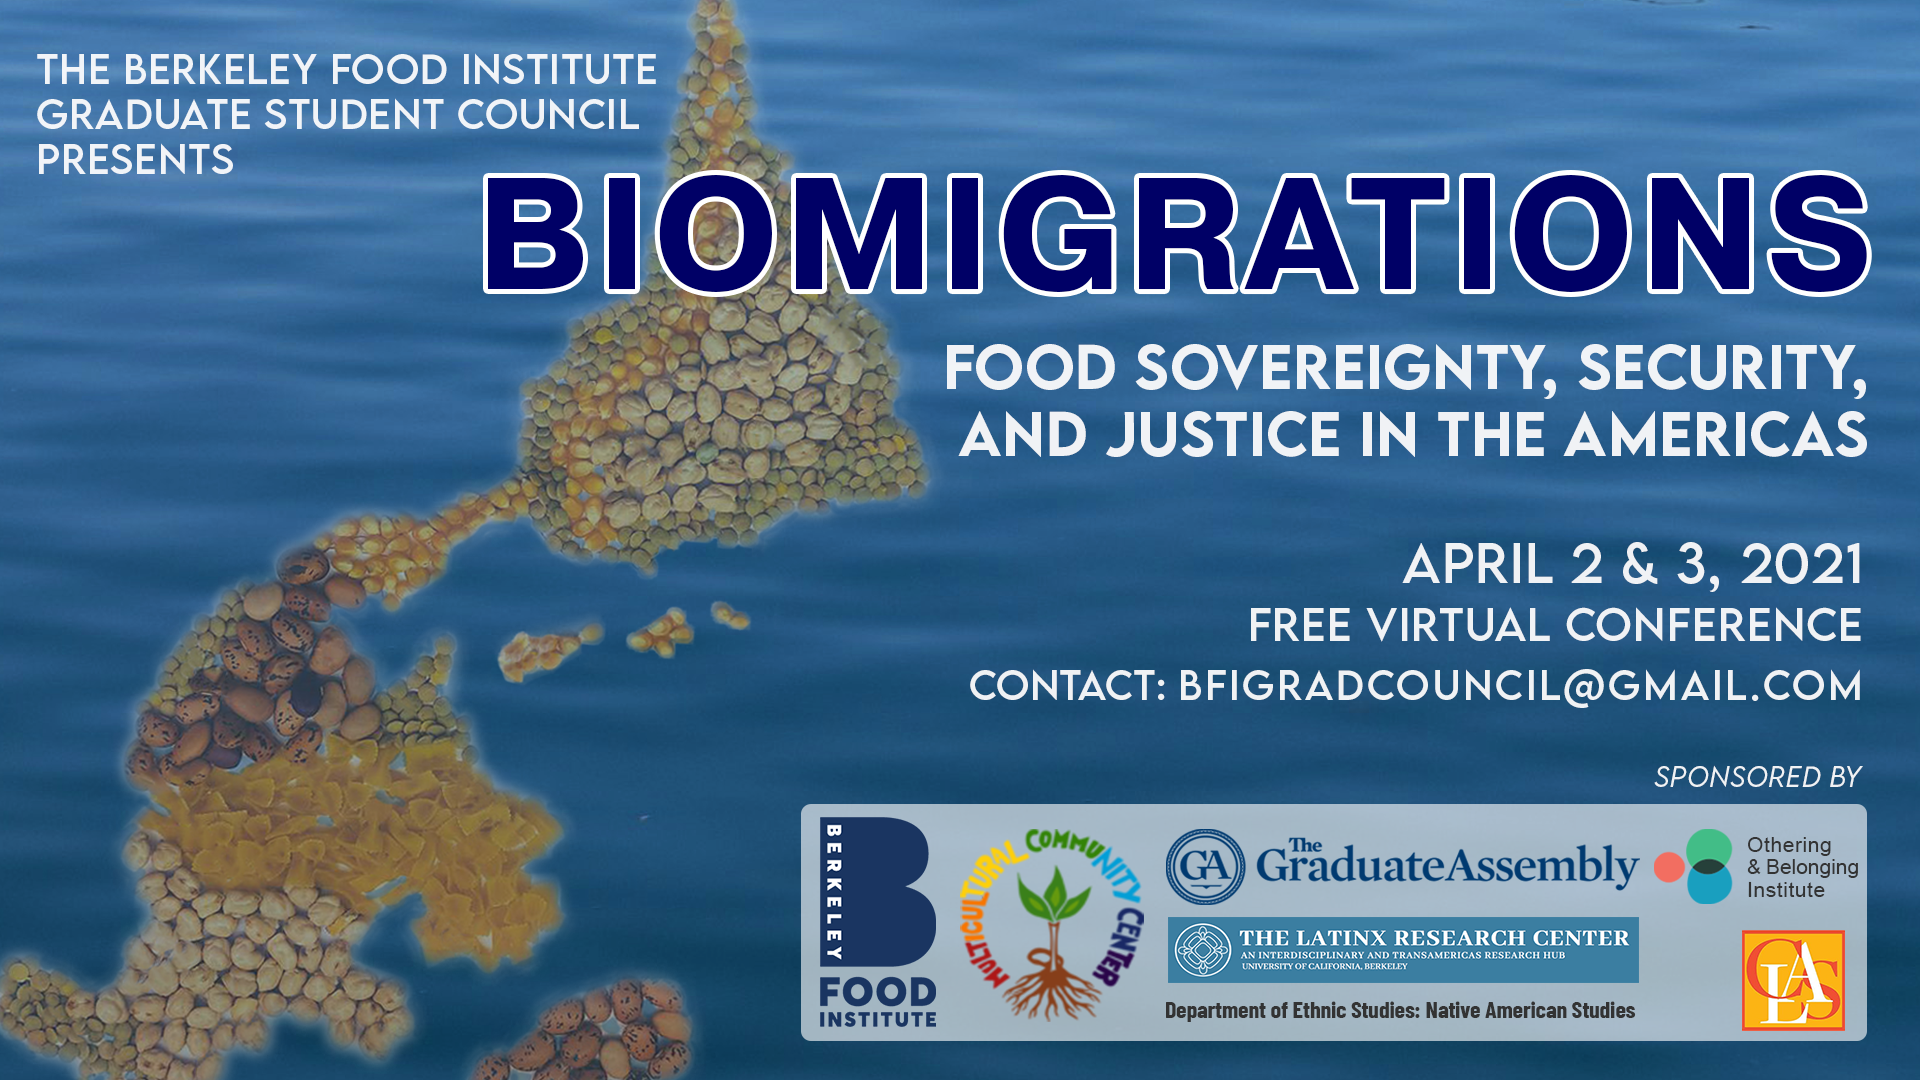 Biomigrations: Food Sovereignty, Security, and Justice in the Americas